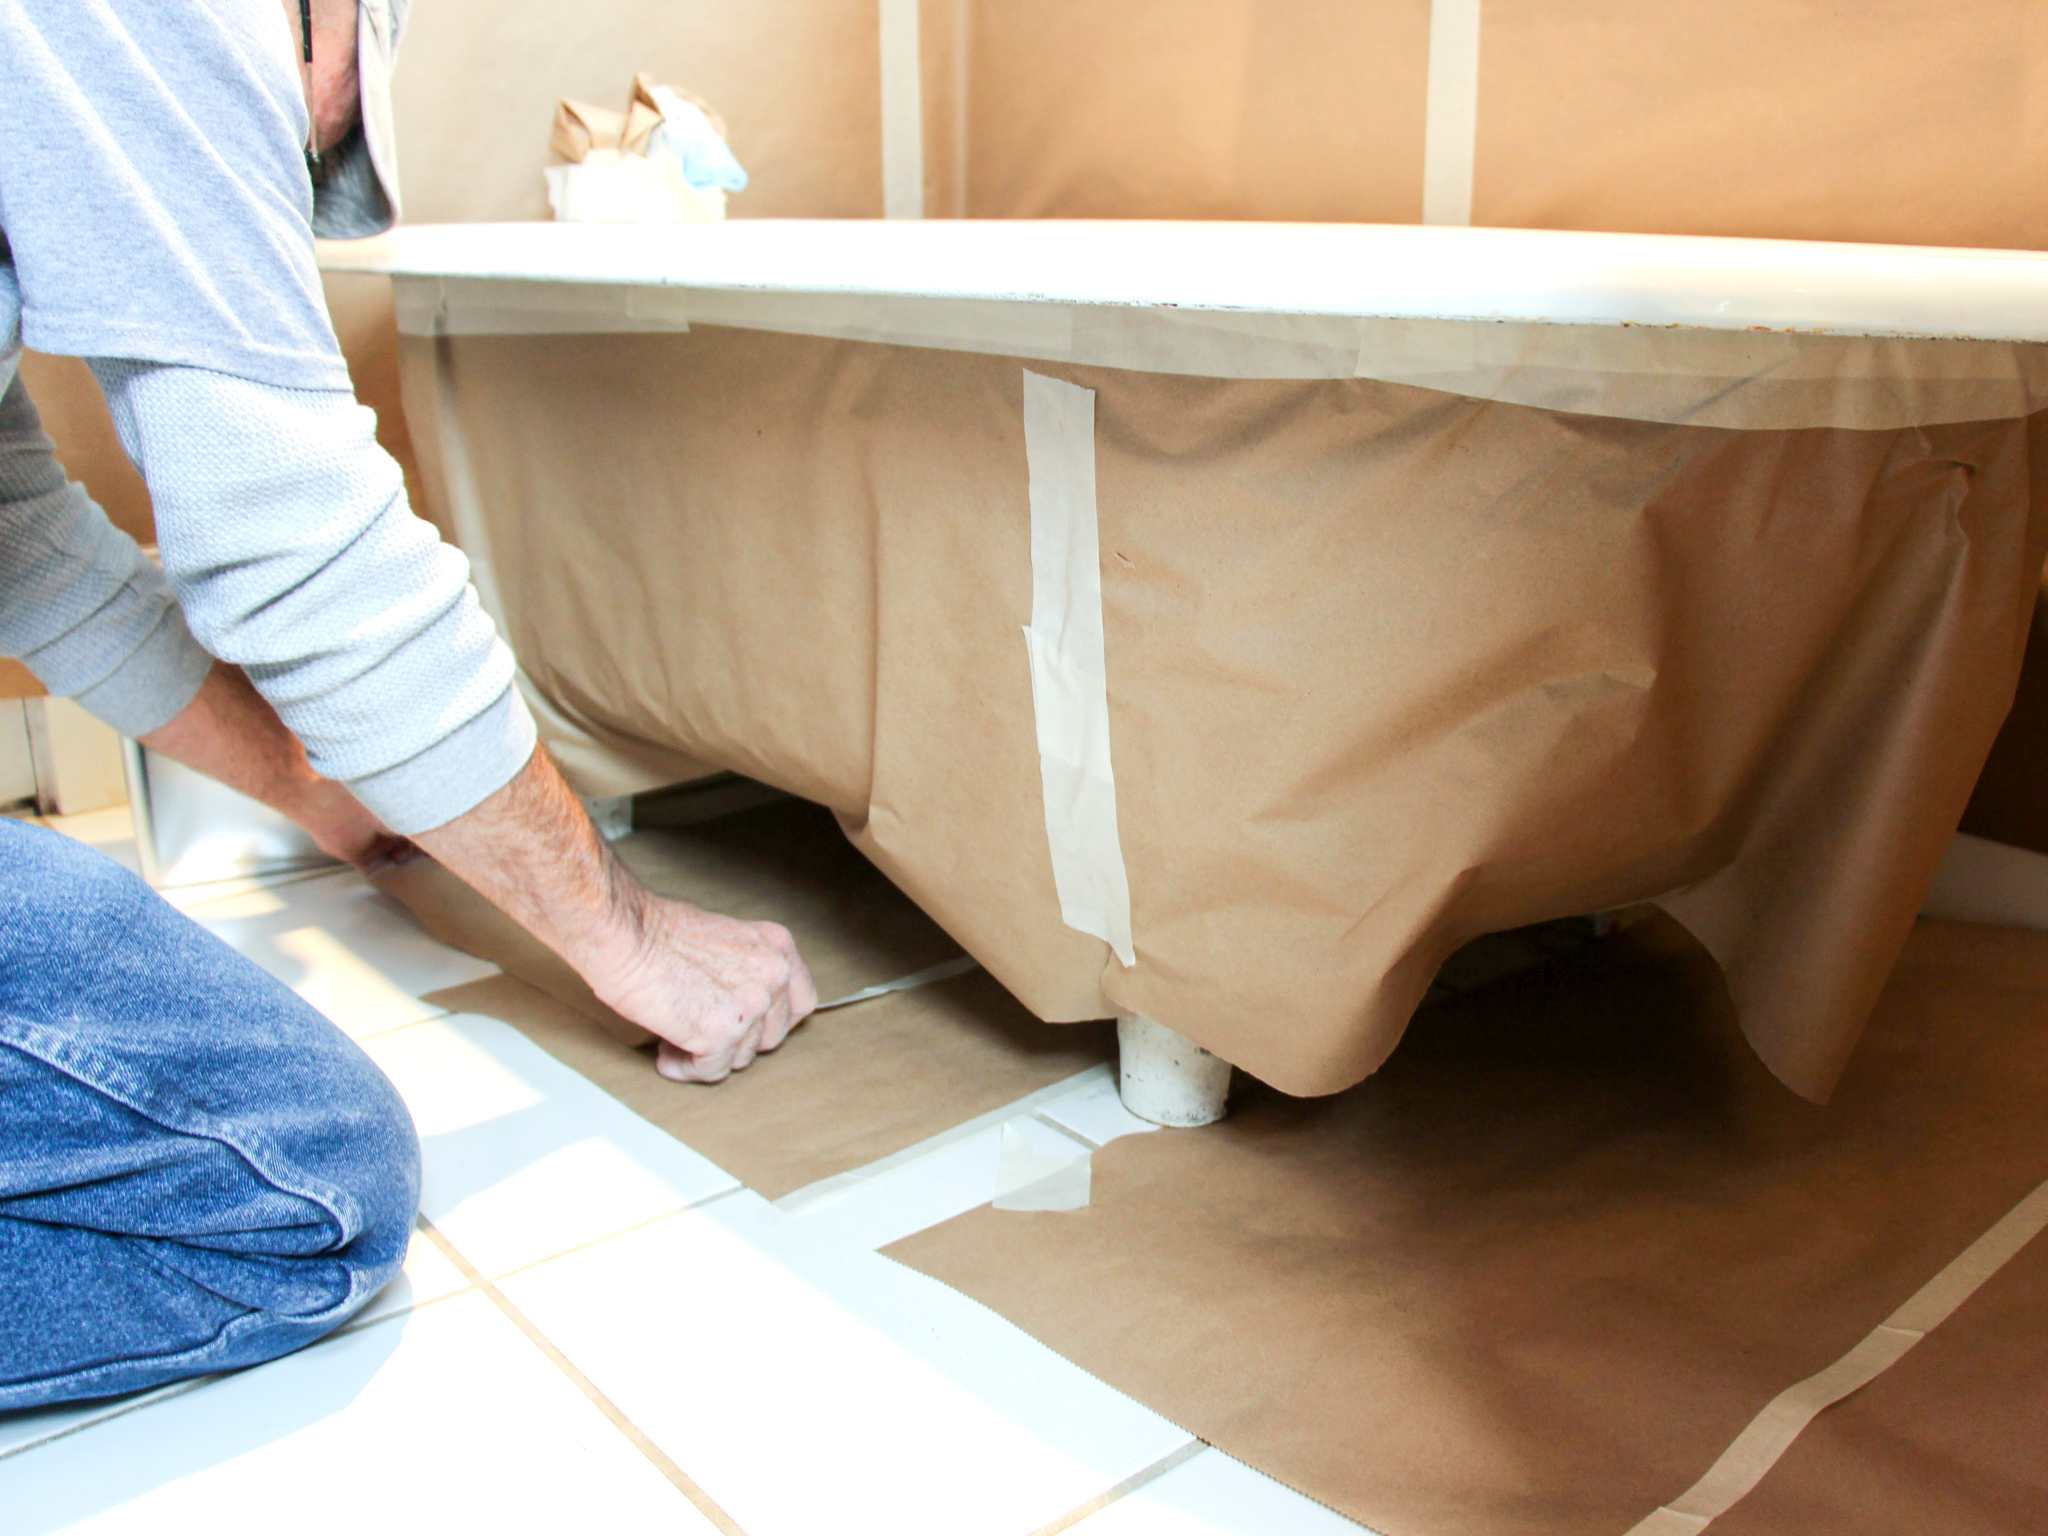 Wonderful Bathtub Refinishing Company Tiny Bathroom Refinishers Rectangular Bathtub Repair Refinishing Young Surface Refinishing OrangeTub Reglazing Cost How To Refinish A Bathtub | How Tos | DIY